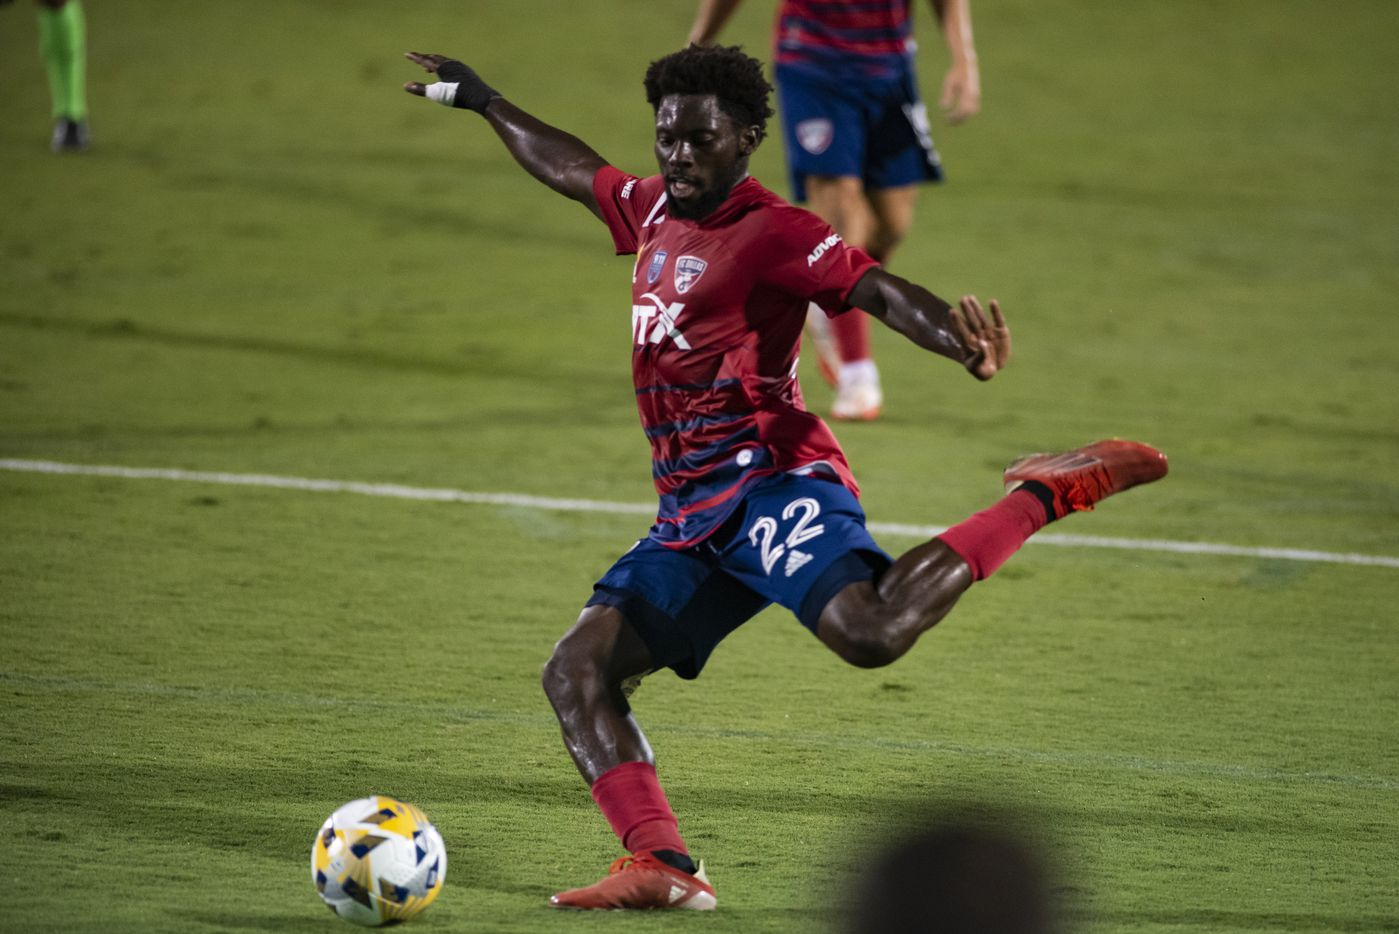 FC Dallas midfielder Ema Twumasi (22) prepares to kick the ball during FC DallasÕ home game against the San Jose Earthquakes at Toyota Stadium in Frisco, Texas on Saturday, September 11, 2021. (Emil Lippe/Special Contributor)